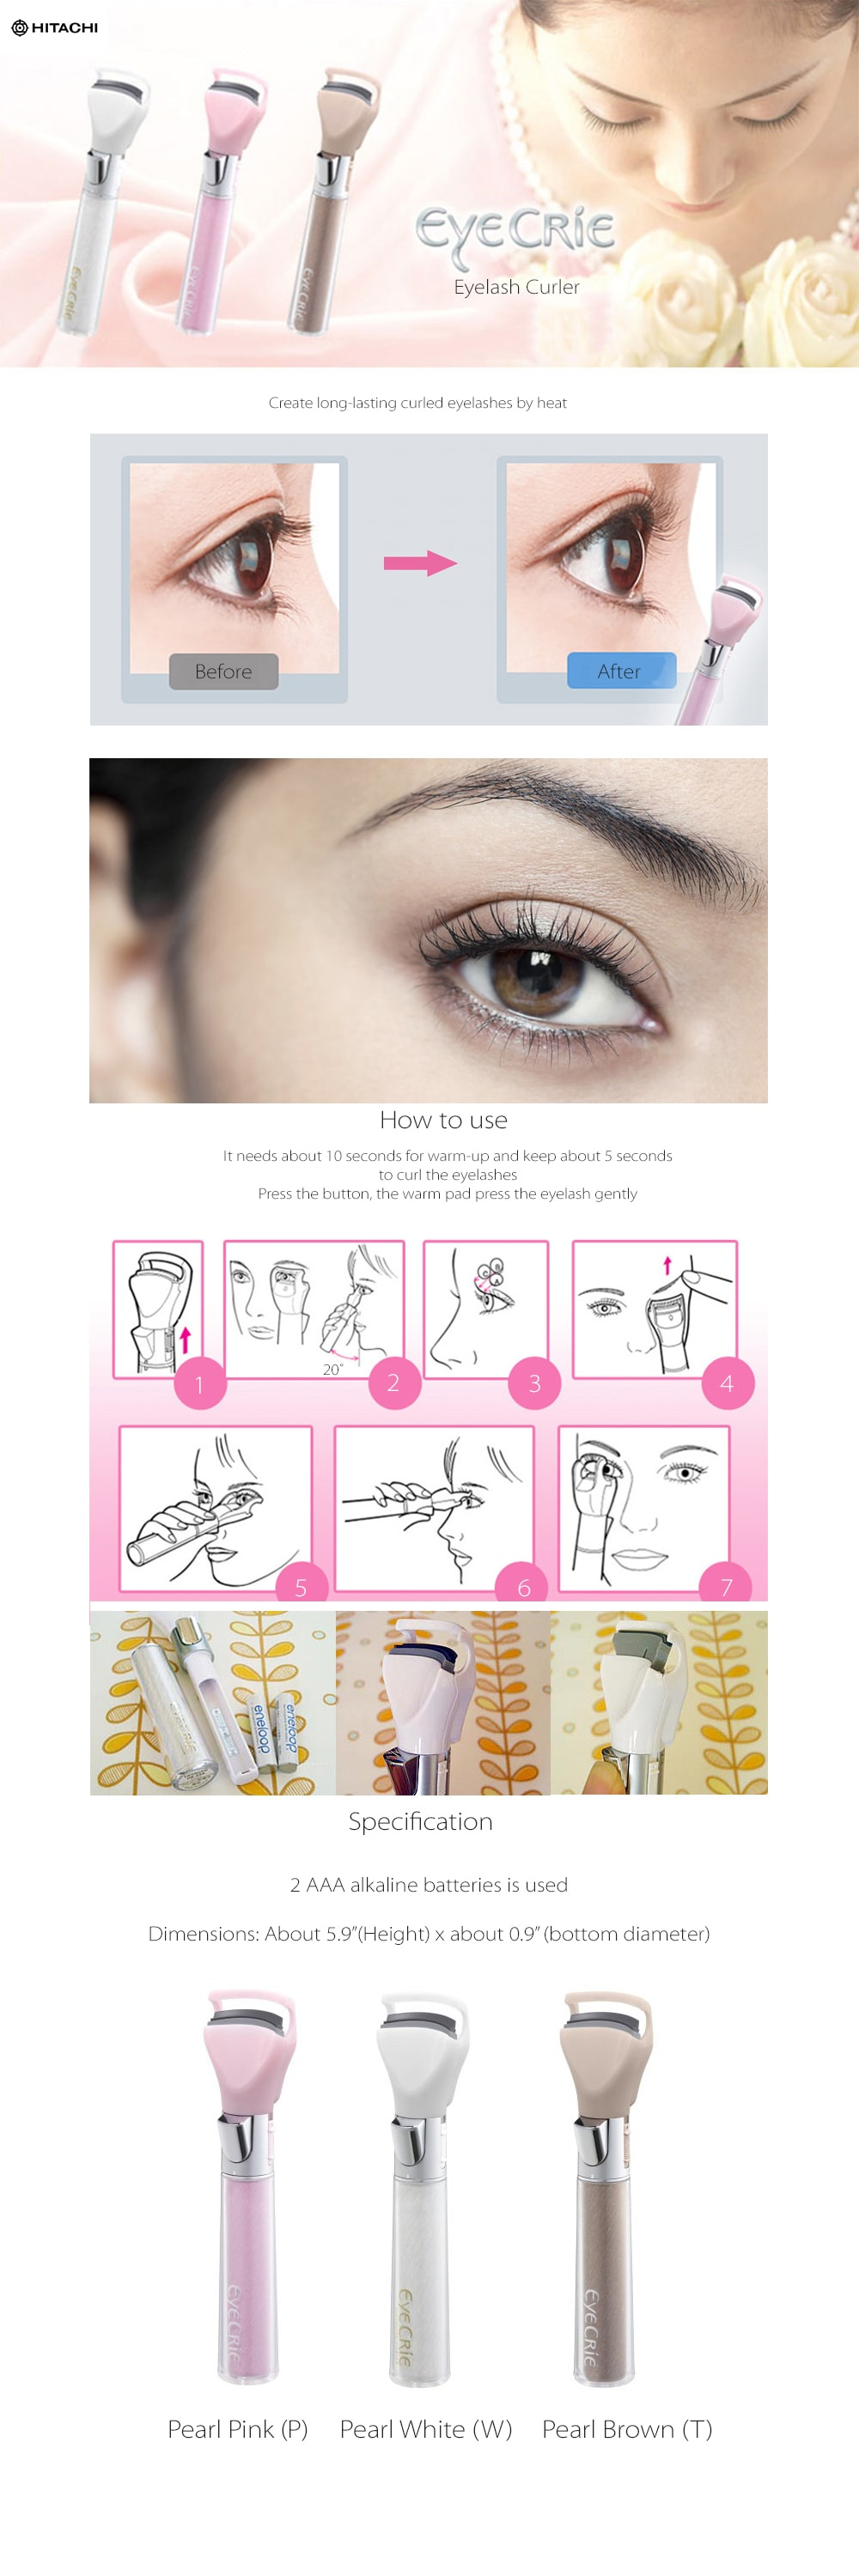 Eye Crie Eyelash Curler Imported From Japan